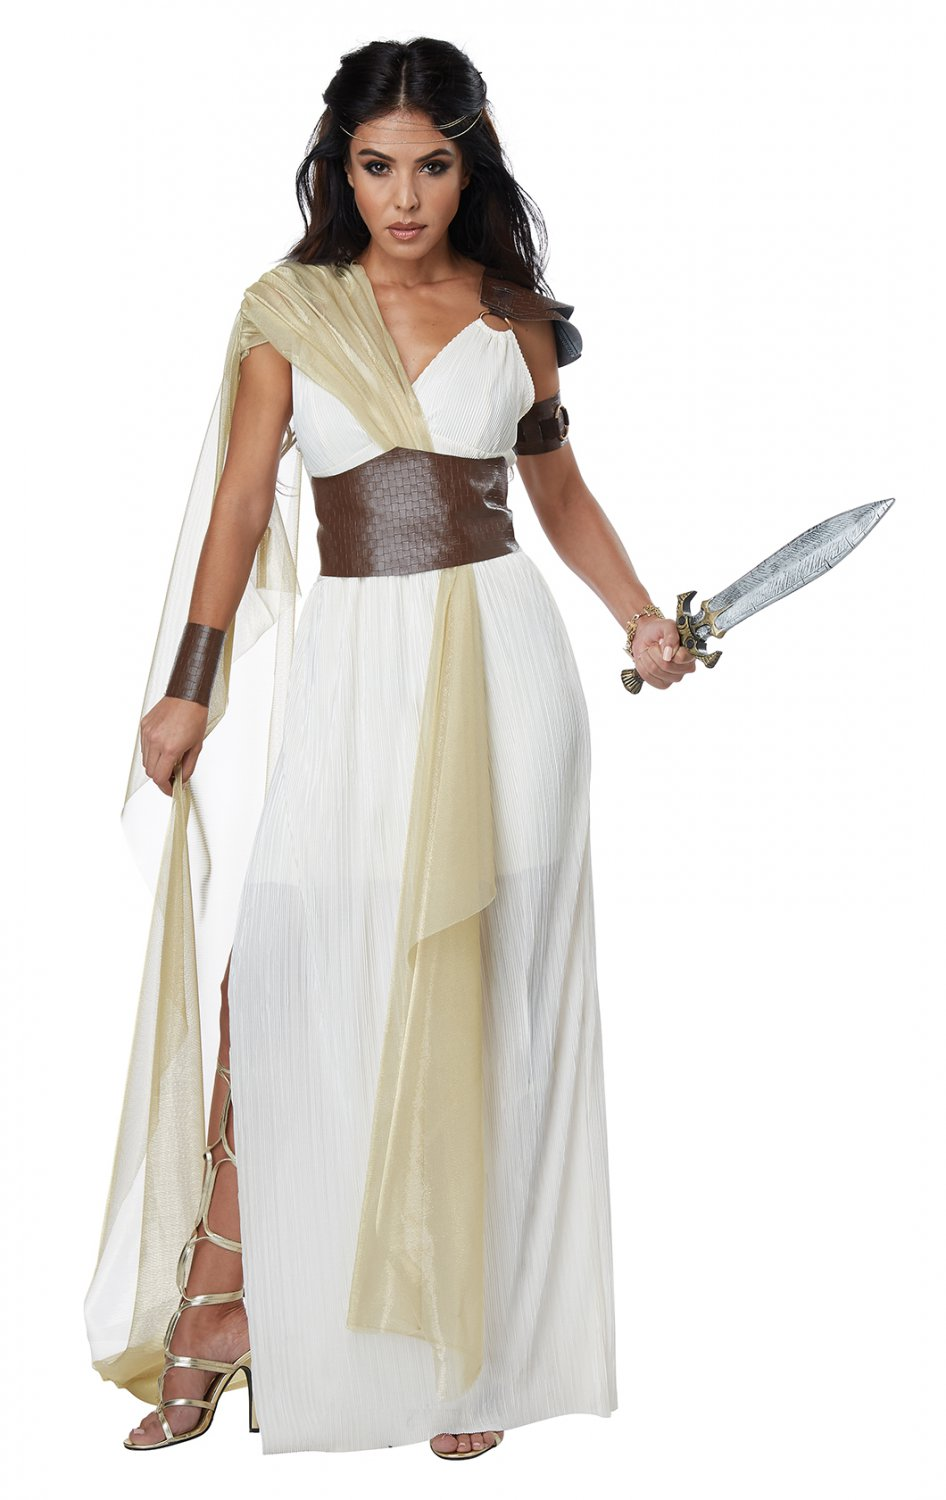 Size: Medium #01446 Titan Trojan Spartan Warrior Queen Adult Costume